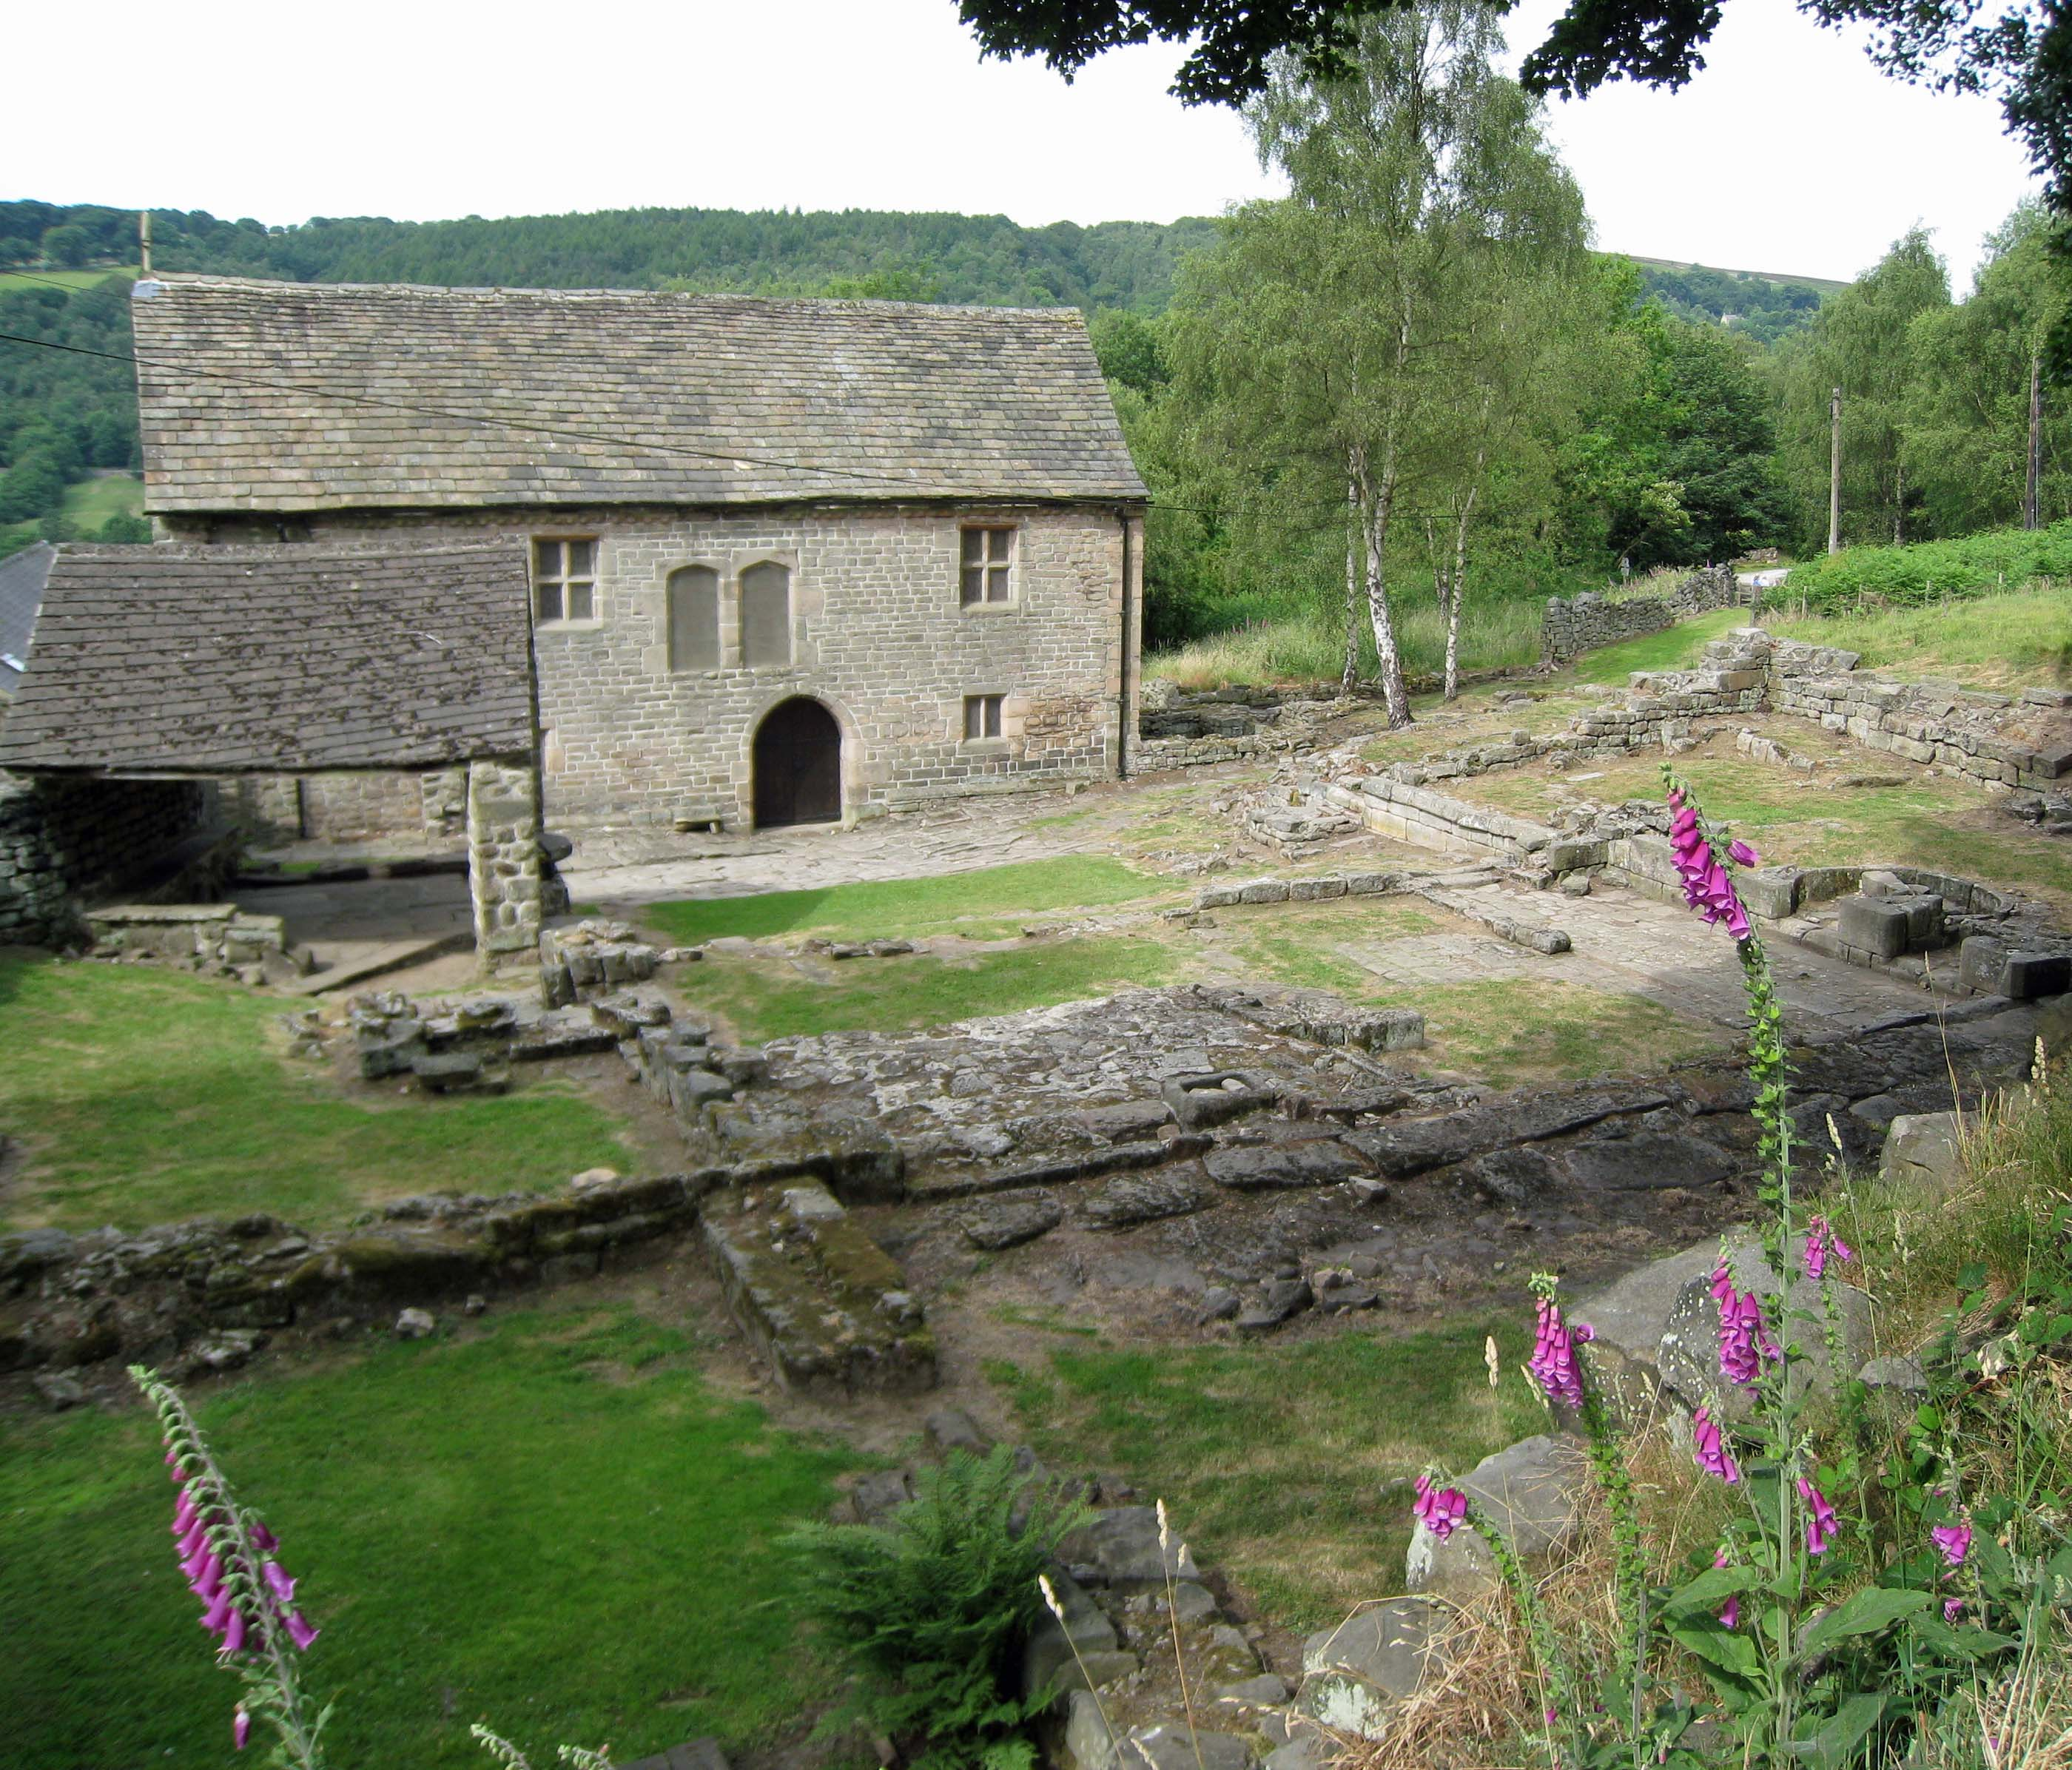 A photograph of stone ruins on a wooded hillside. Behind the ruins is an intact, two story, stone building with rectangular windows and an arched doorway.